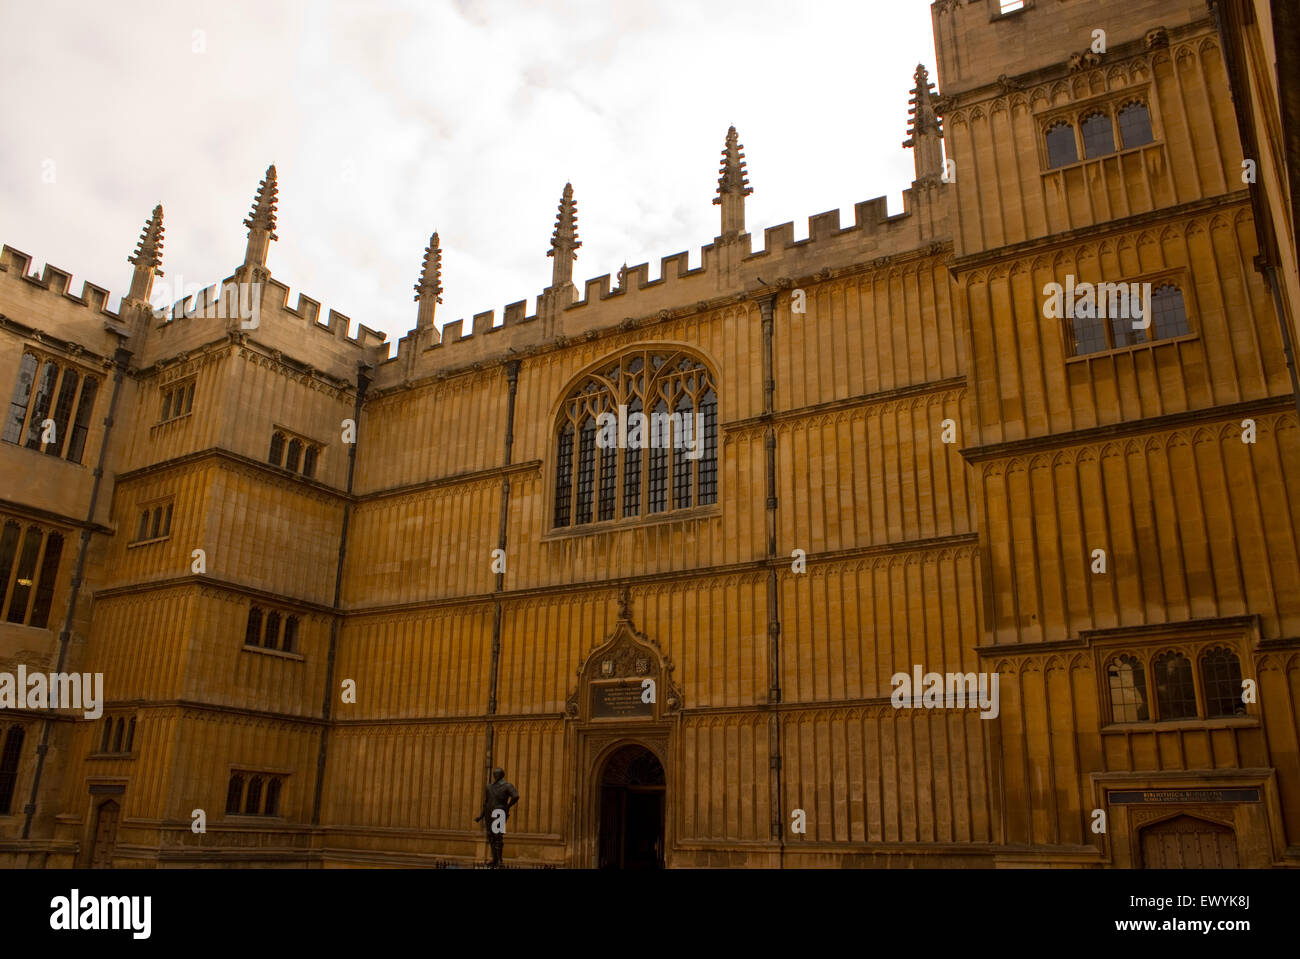 Angled view of Bodleian Library exterior, Oxford United Kingdom - Stock Image